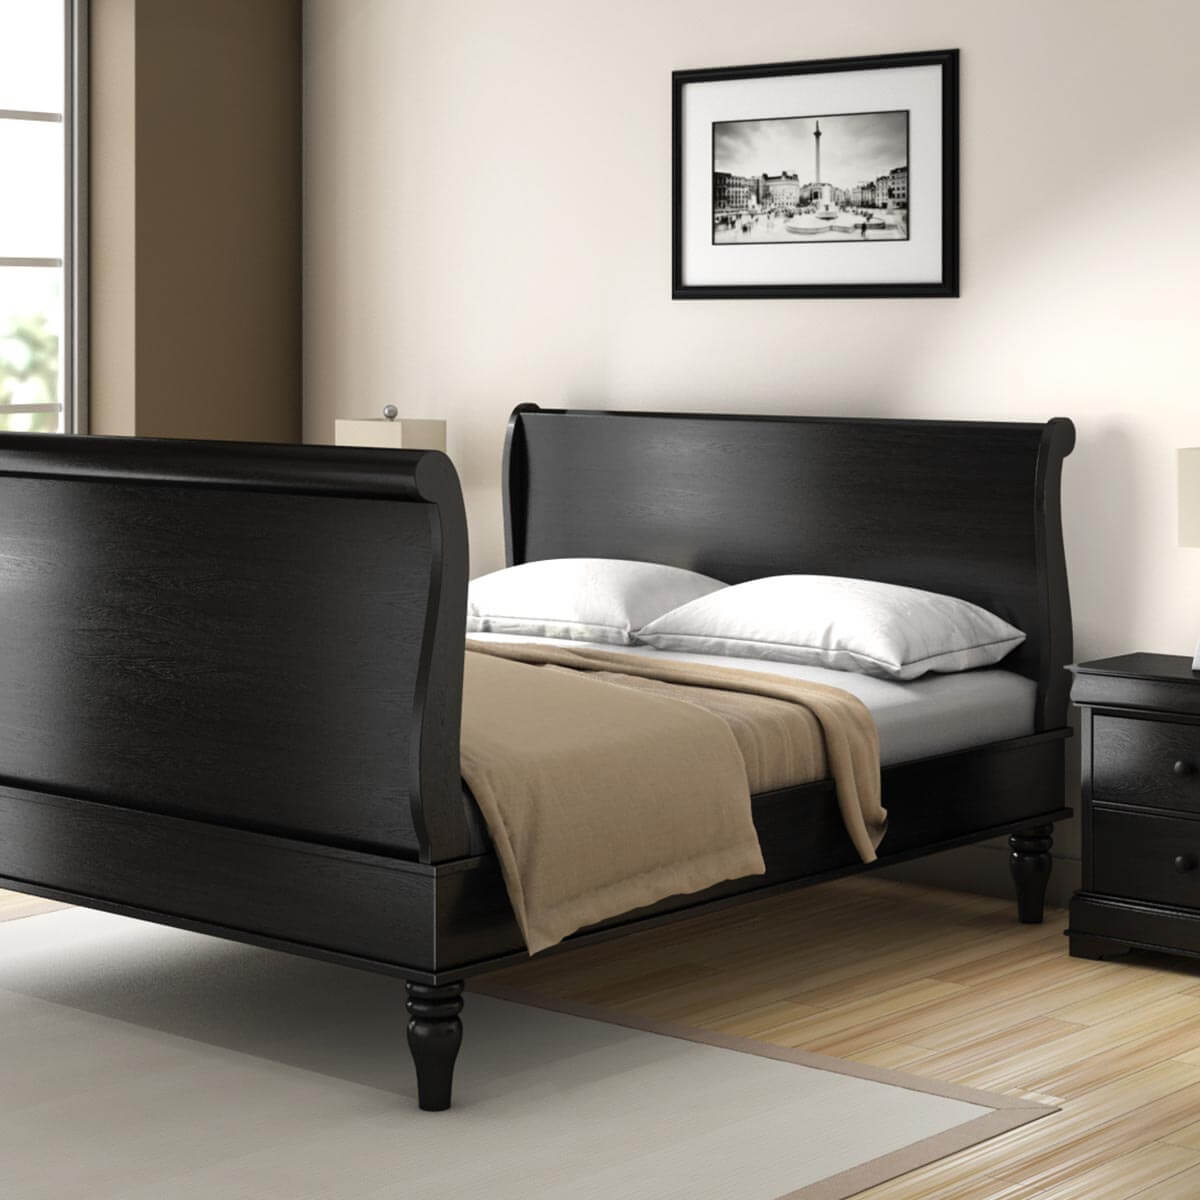 midnight empire solid wood queen size platform bed frame. Black Bedroom Furniture Sets. Home Design Ideas